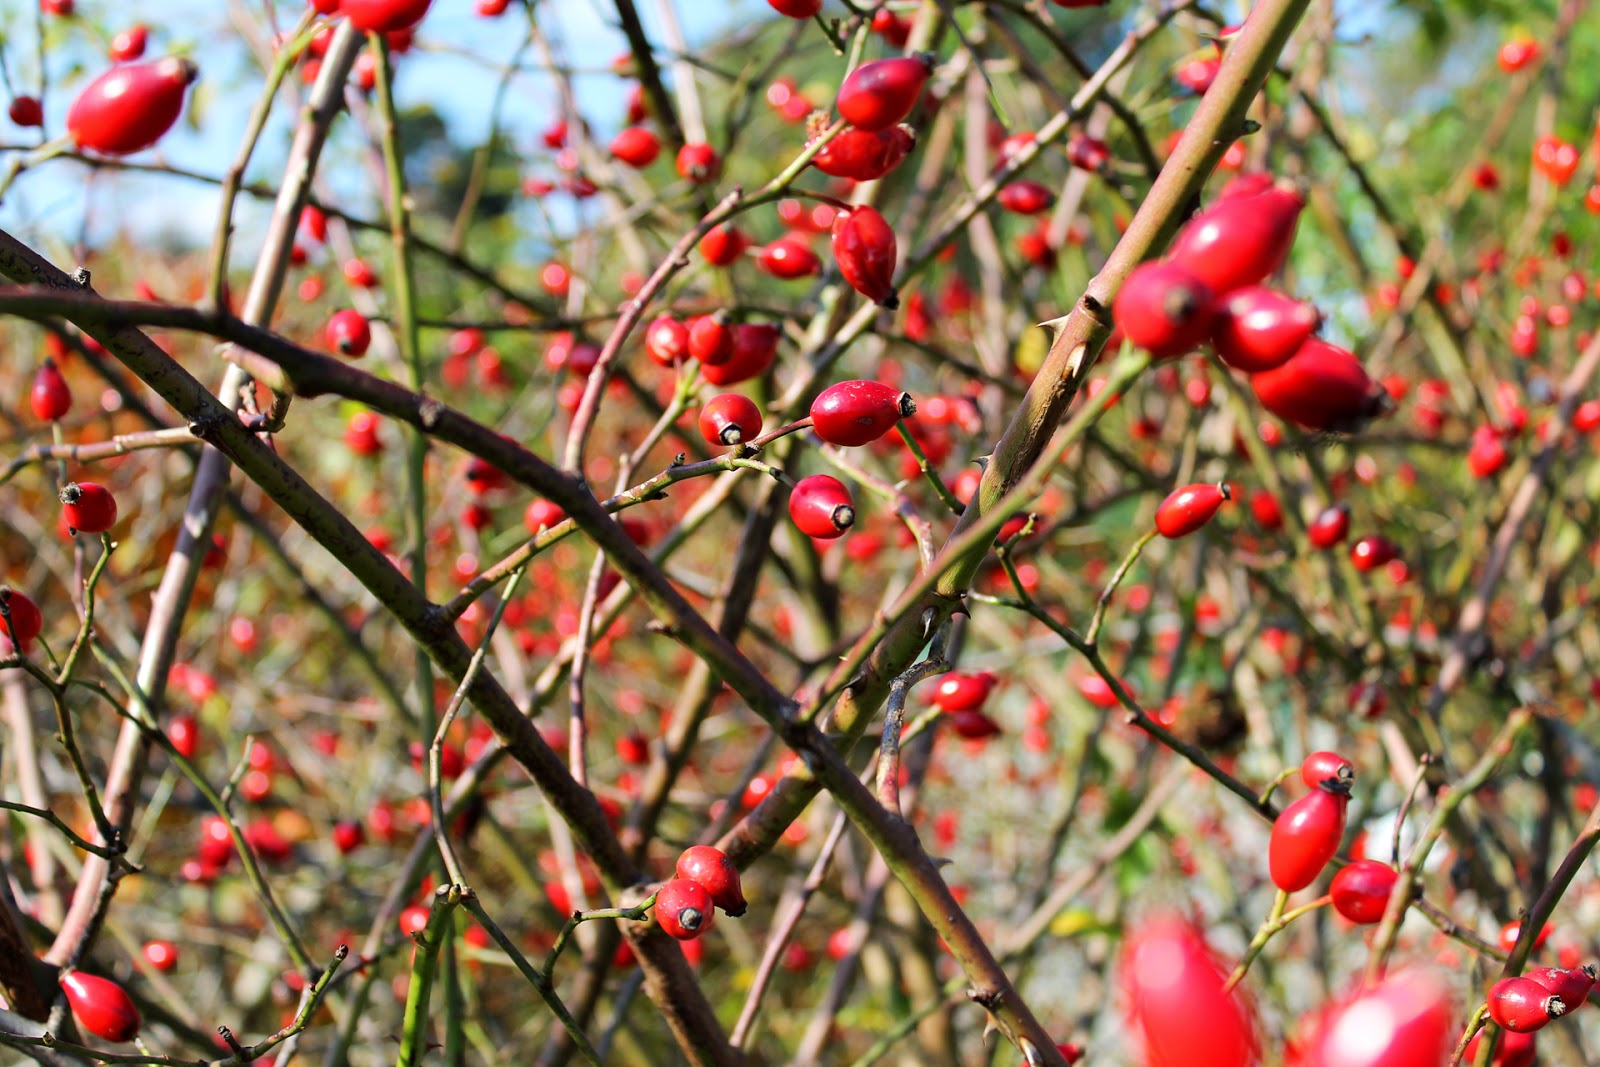 Rose shrub with hips